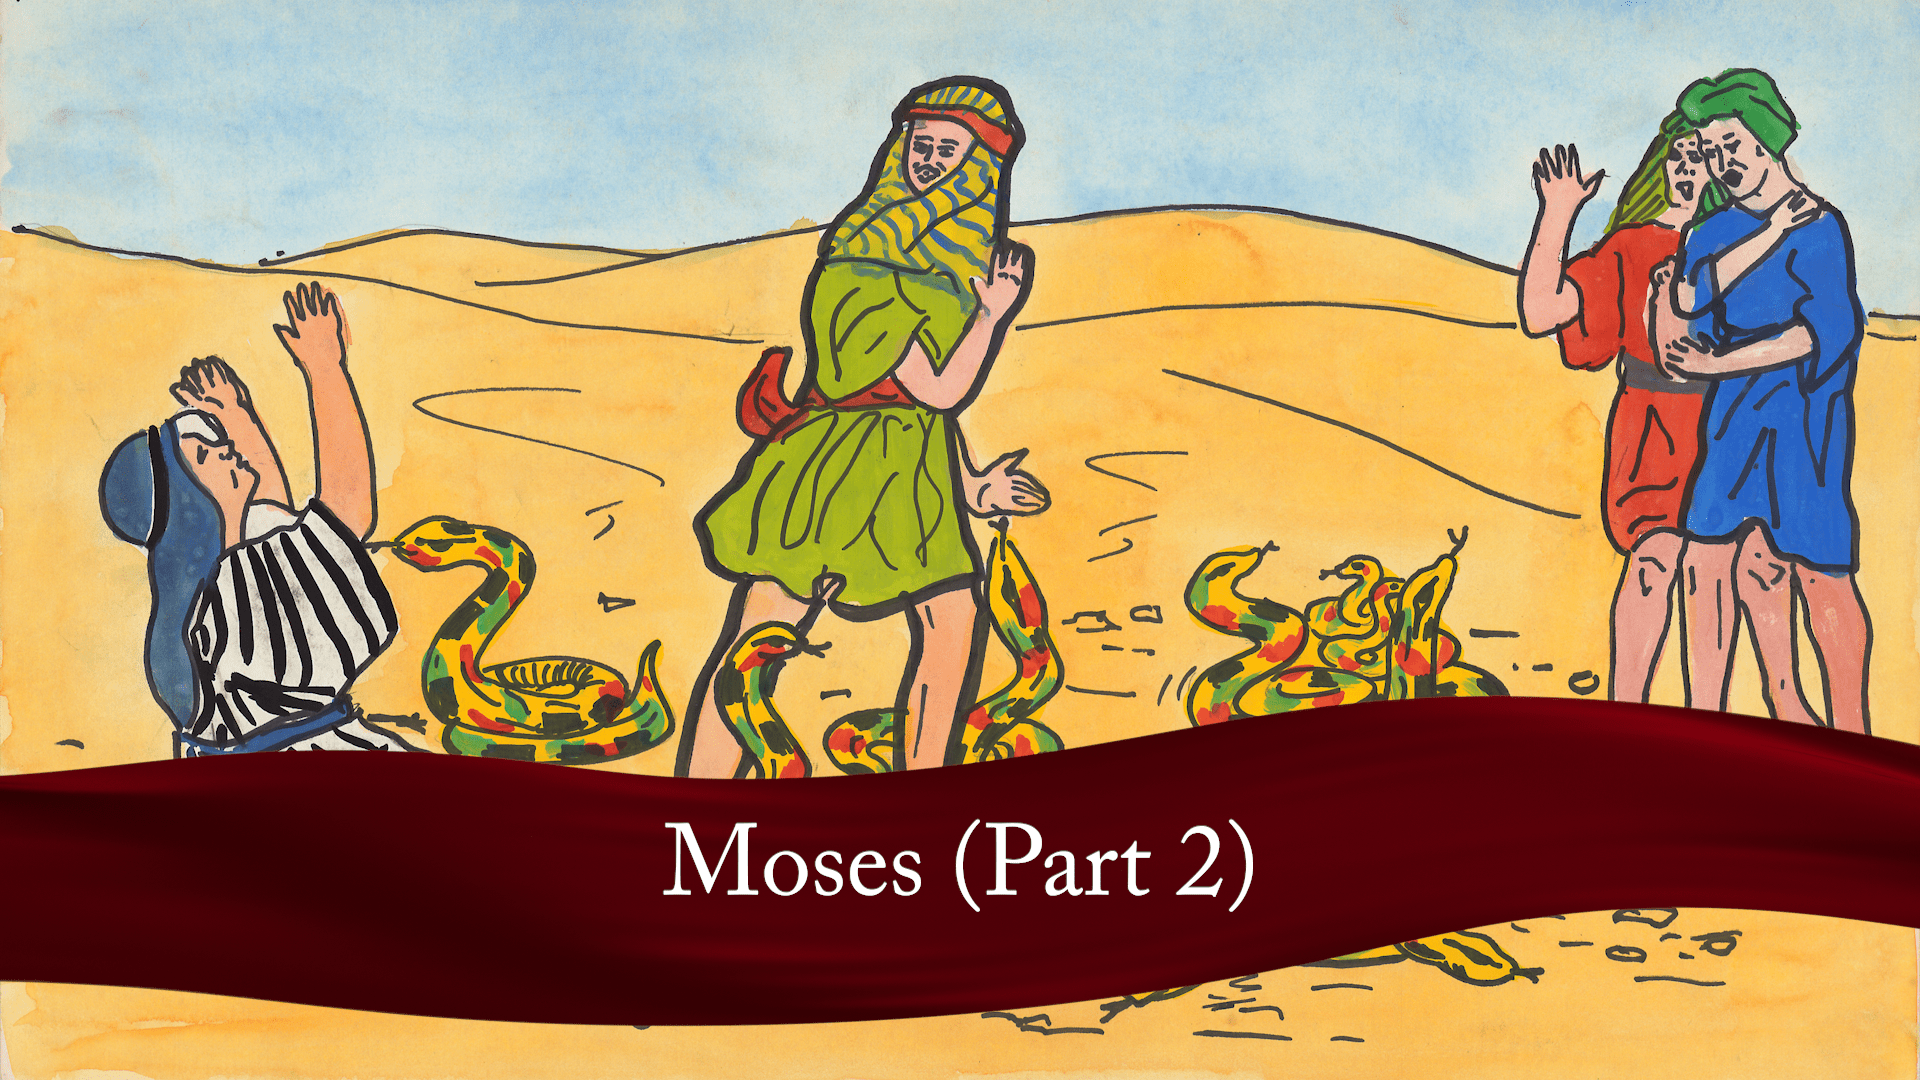 Moses Part 2